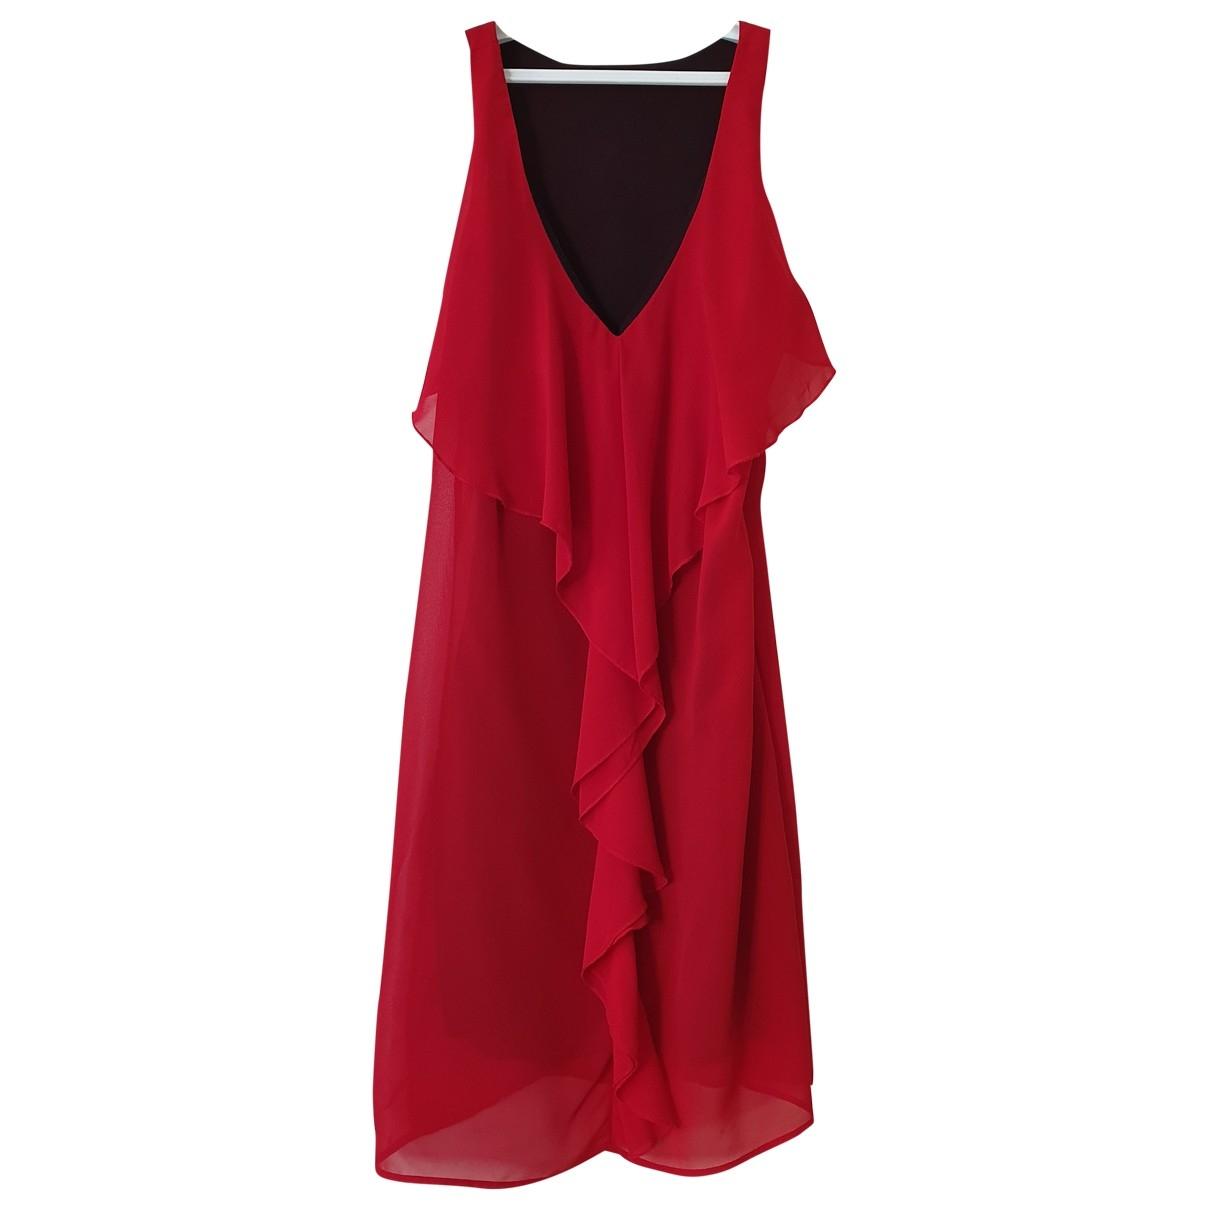 Needle & Thread \N Red dress for Women S International